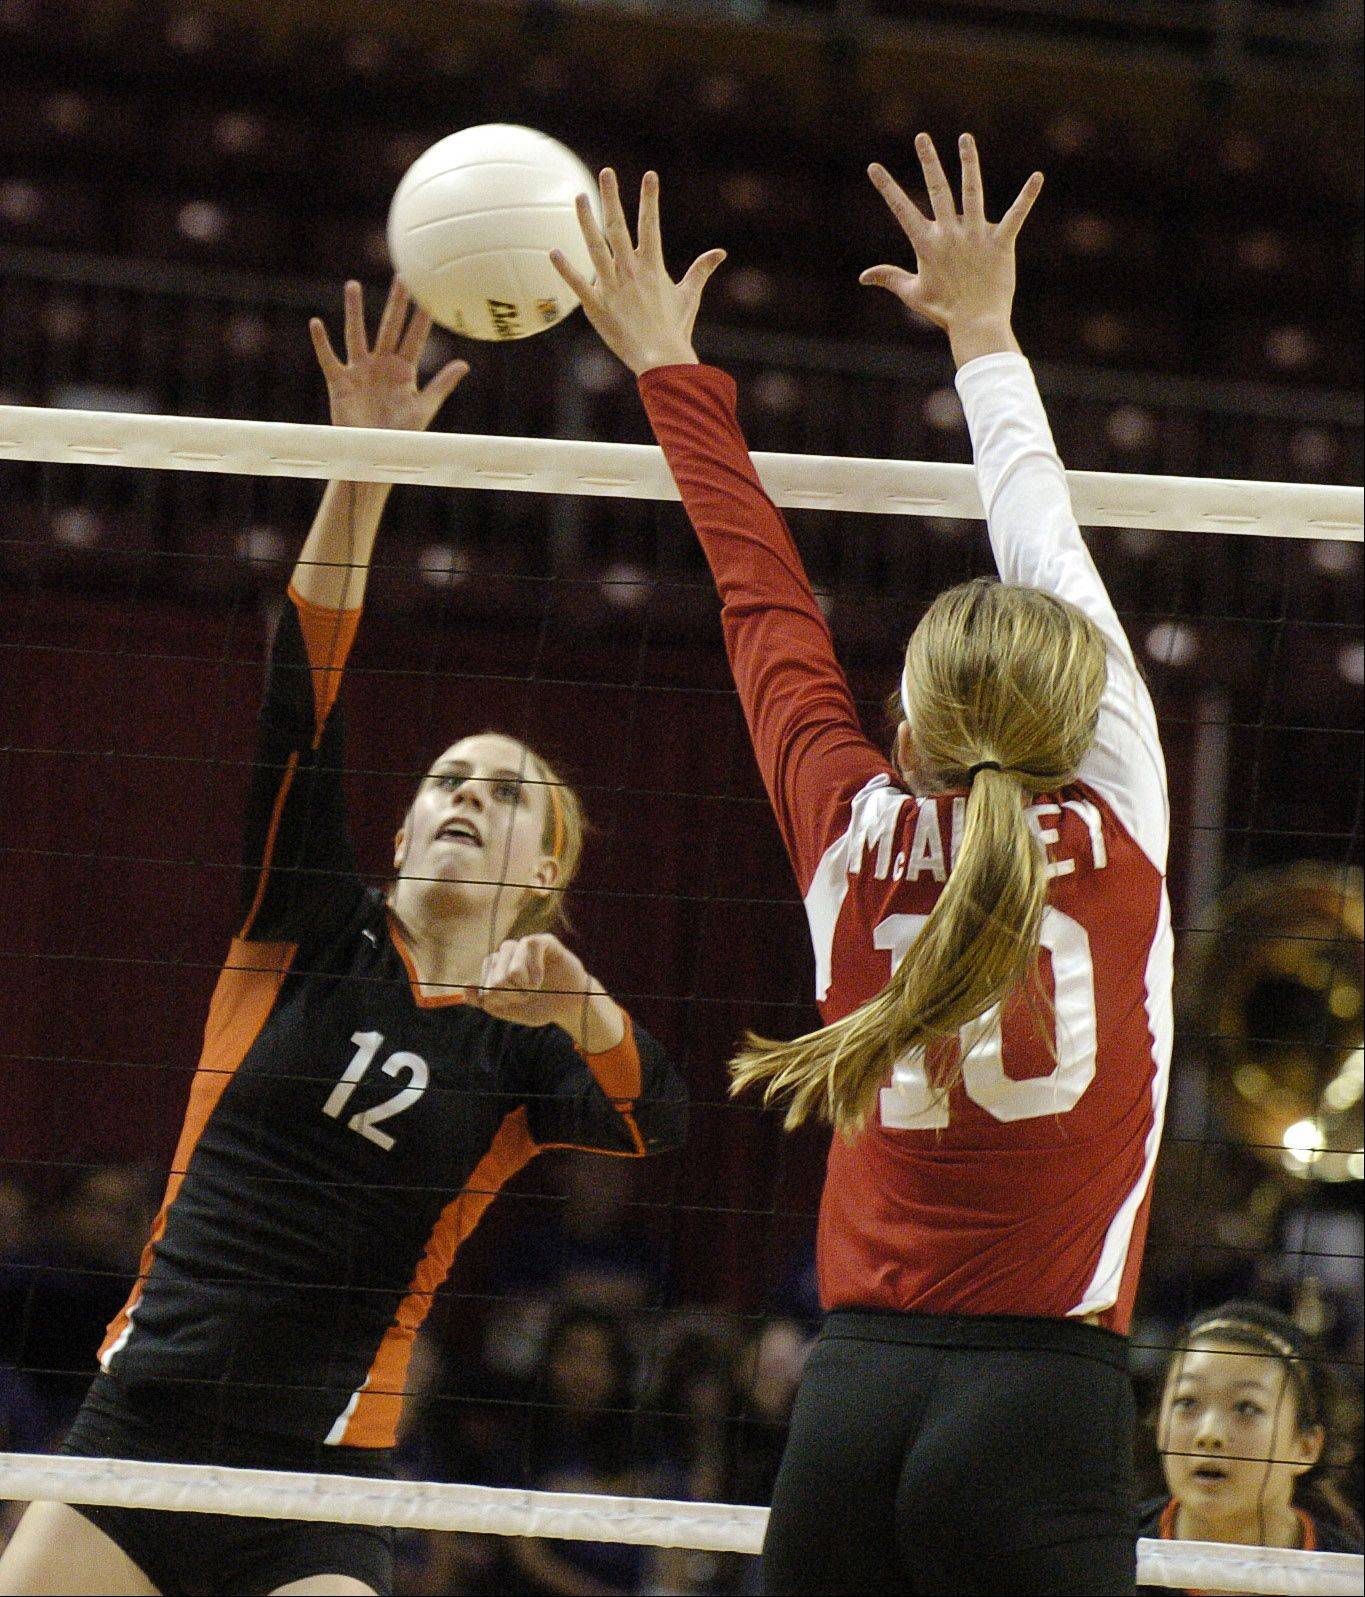 Paul Michna/pmichna@dailyherald.comJordan Bauer of Libertyville,left hits the ball while Ryann DeJarld of Mother McAuley attempts to block it. This took place during the Libertyville vs. Mother McAuley Class 4A third-place volleyball game at Redbird Arena, on Illinois State campus Saturday.